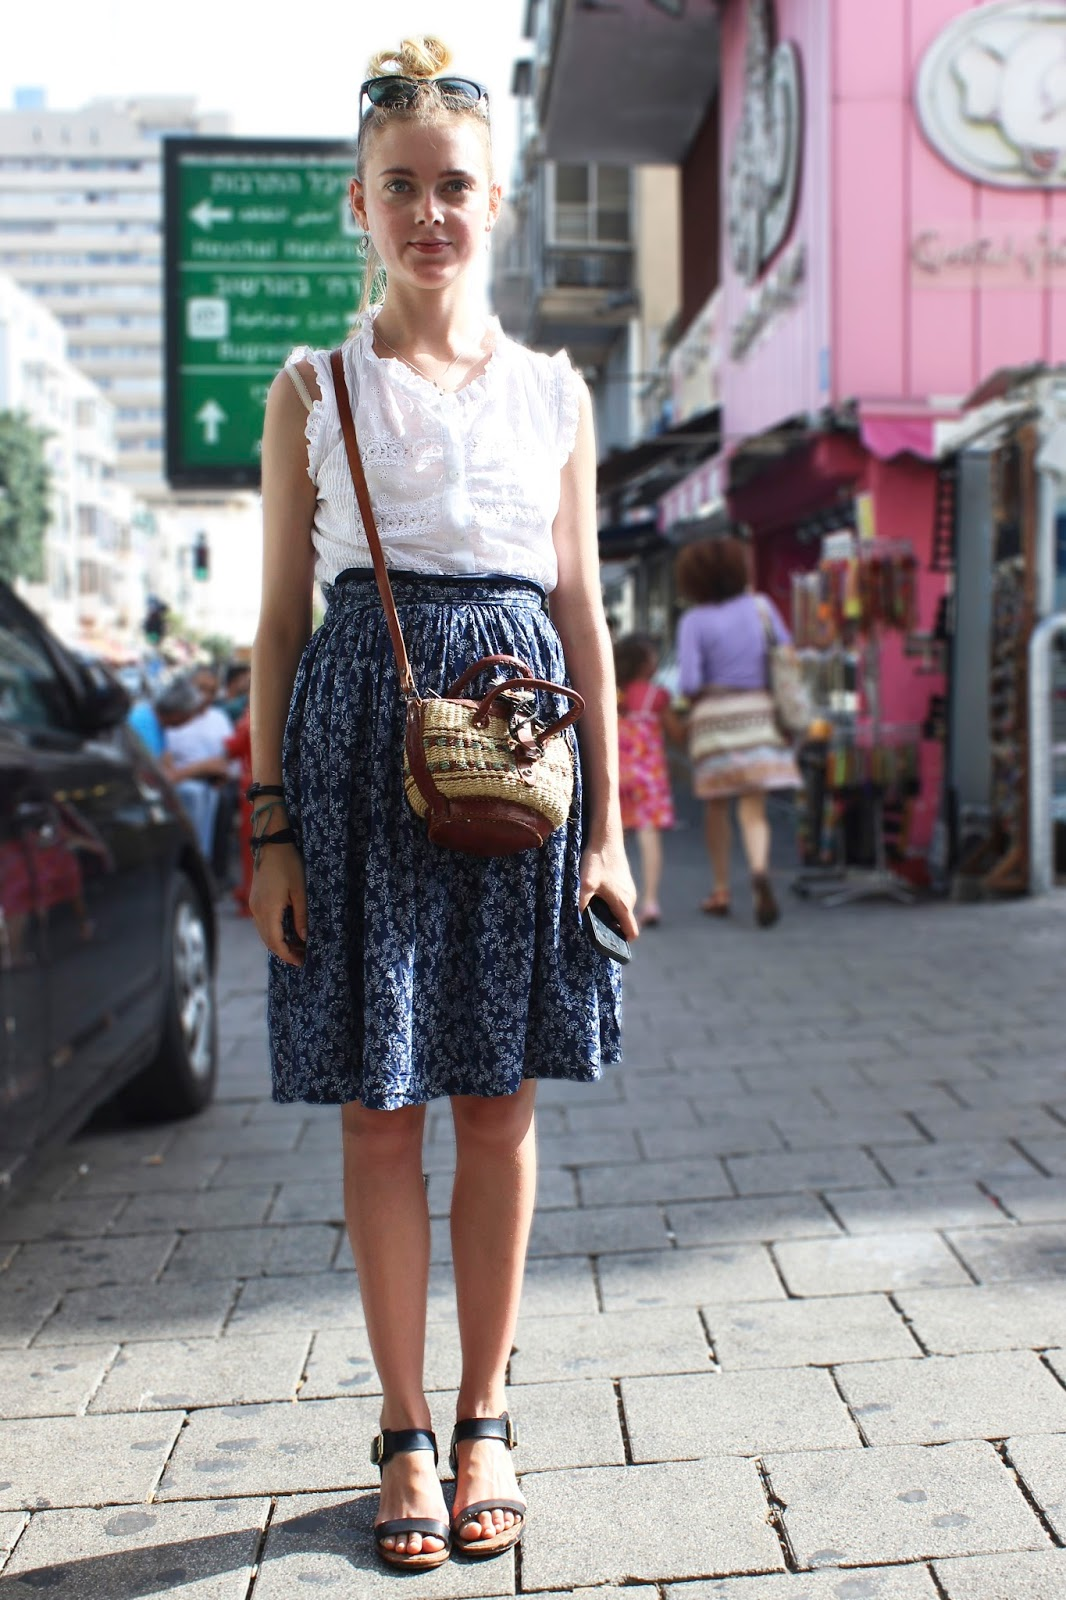 To acquire Style street israel 3 pictures trends